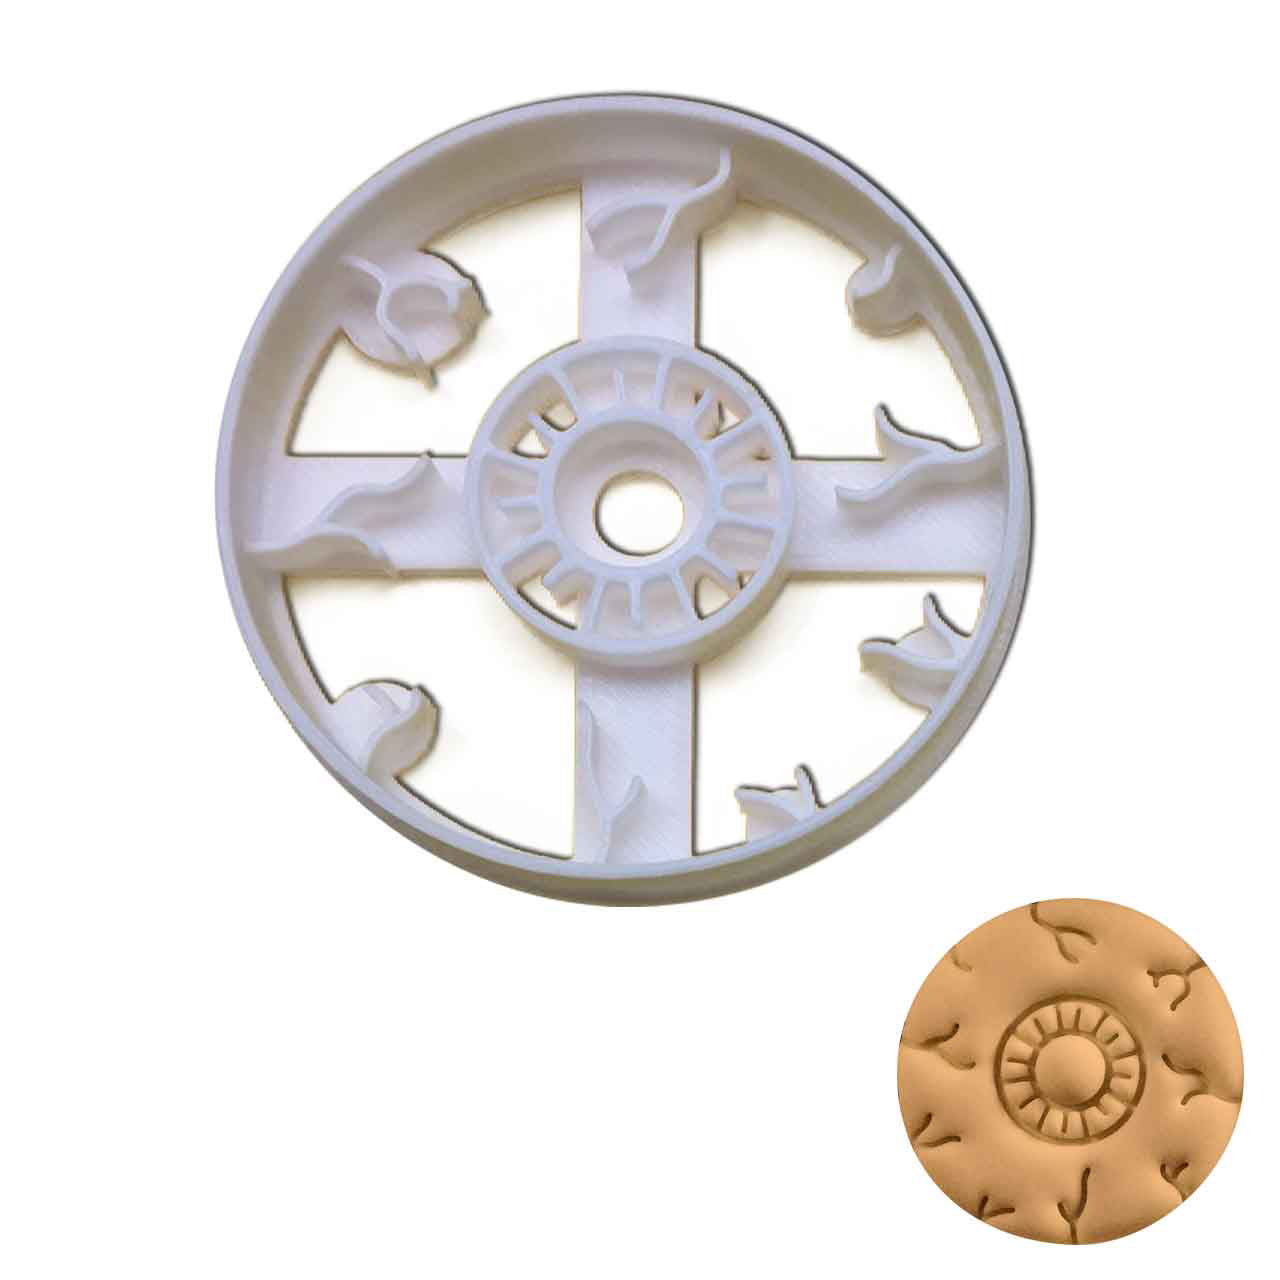 eyeball cookie cutter (Front view)